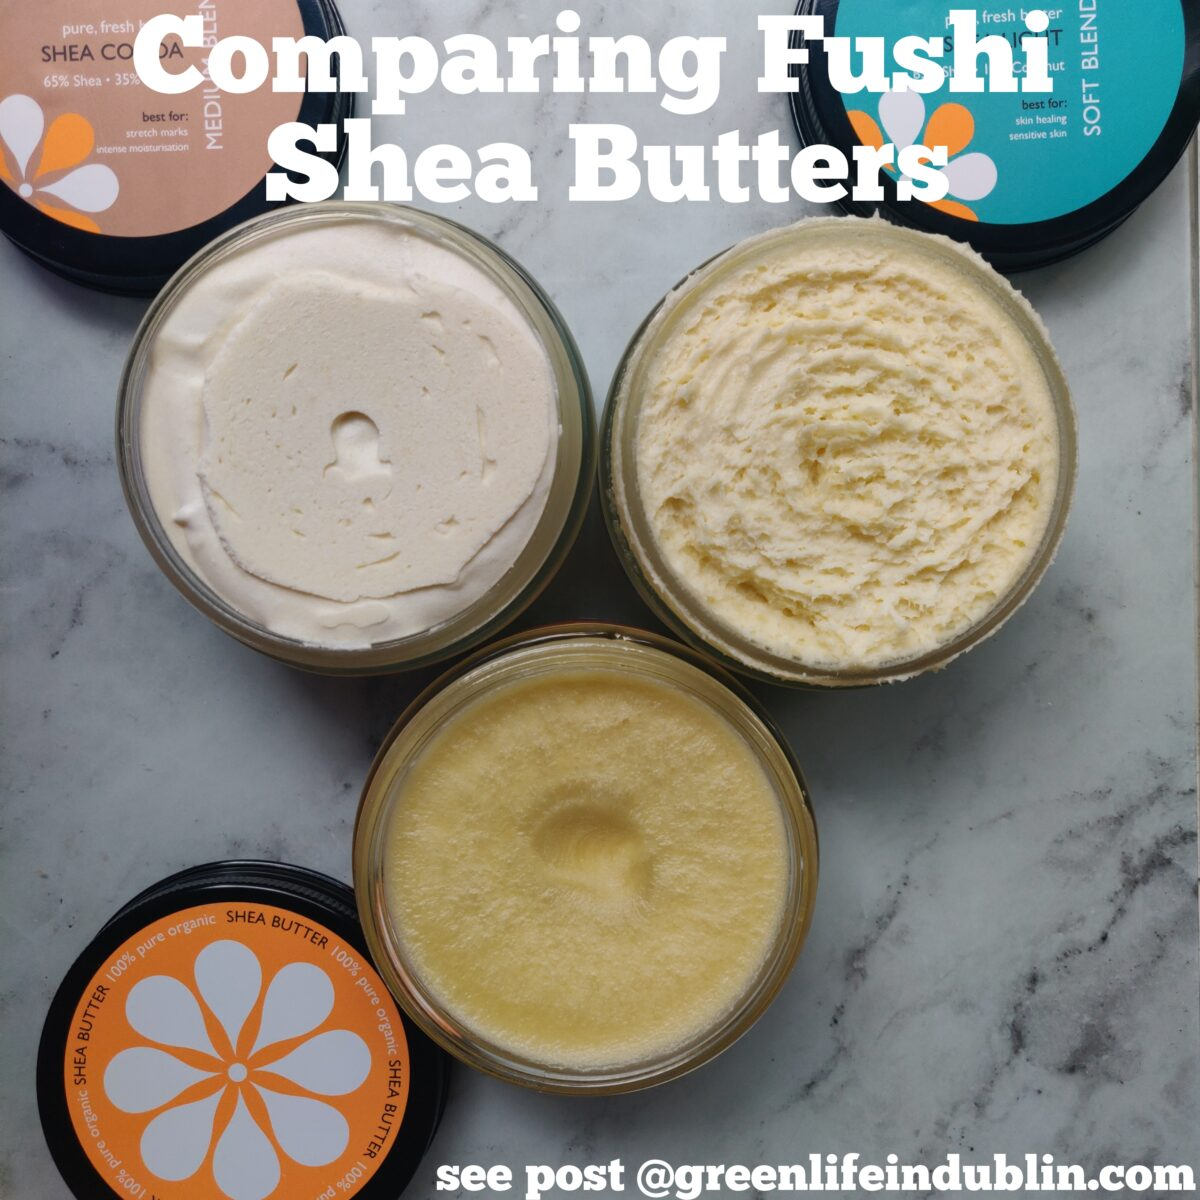 Fushi Shea Butters Comparison & Review